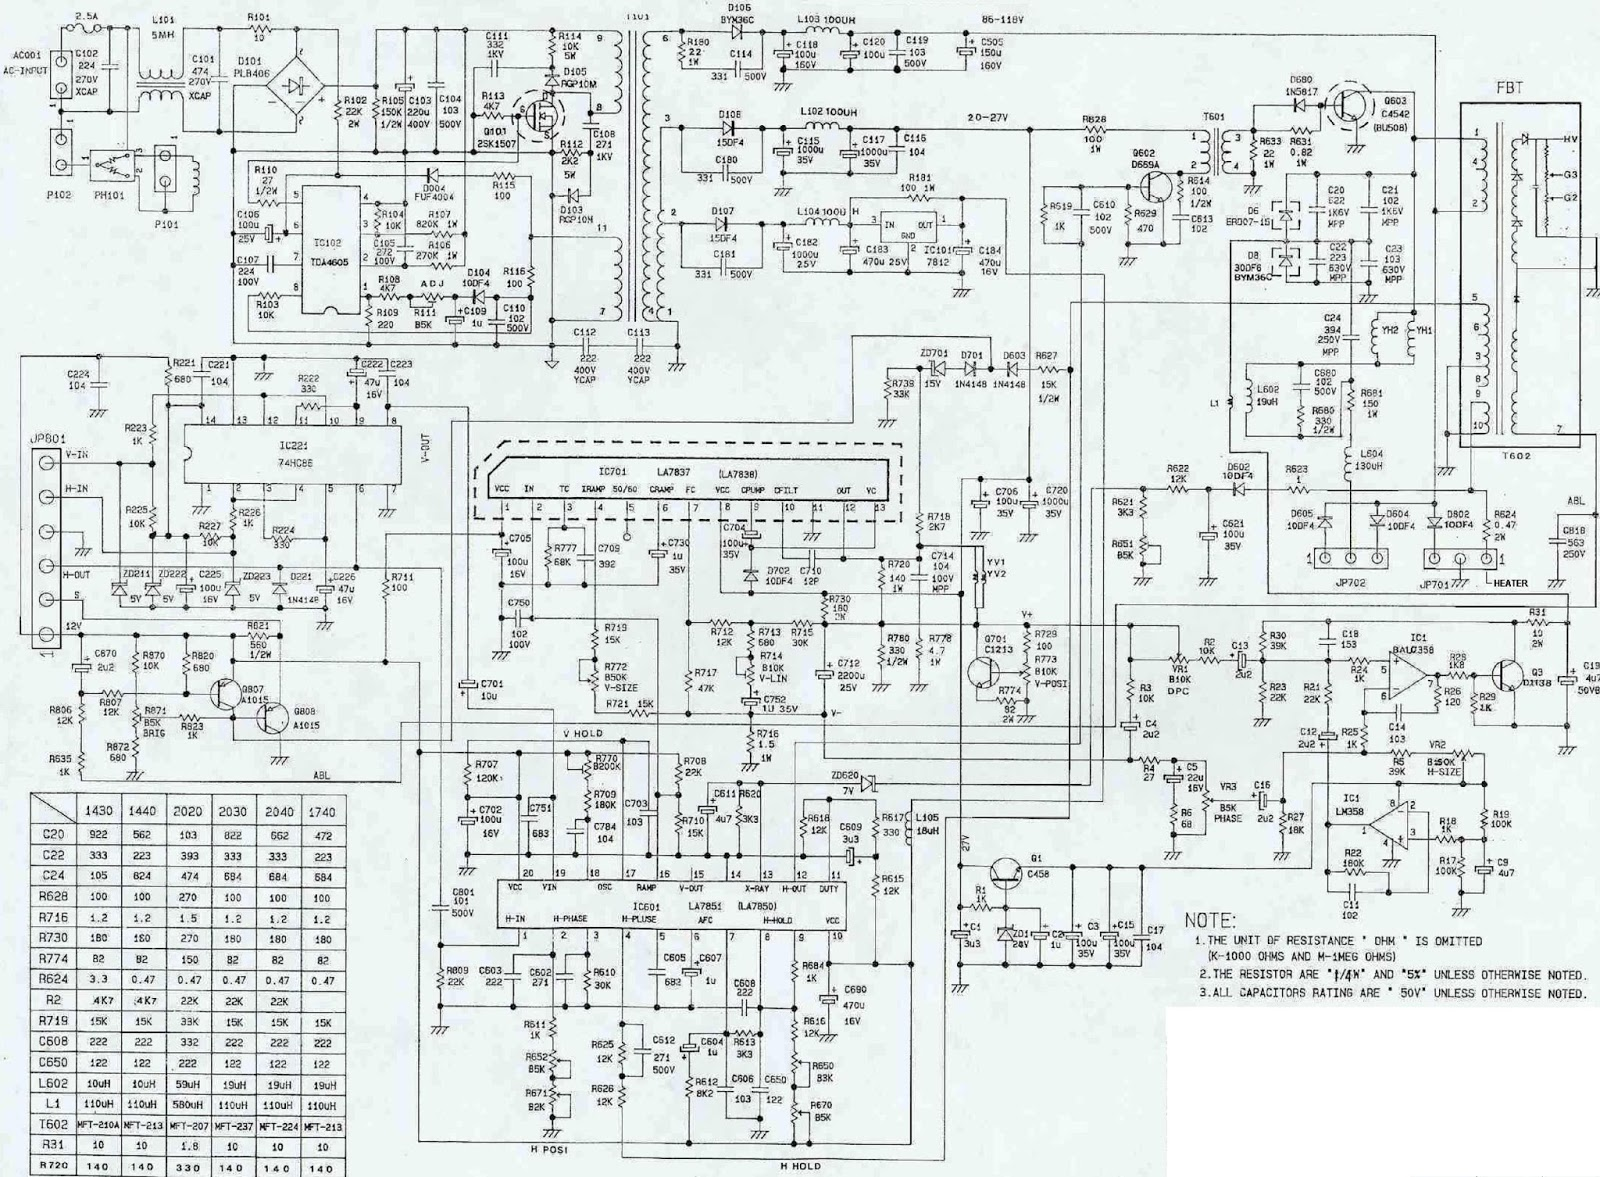 WRG-9367] Circuit Diagram Xbox 360 Controller on